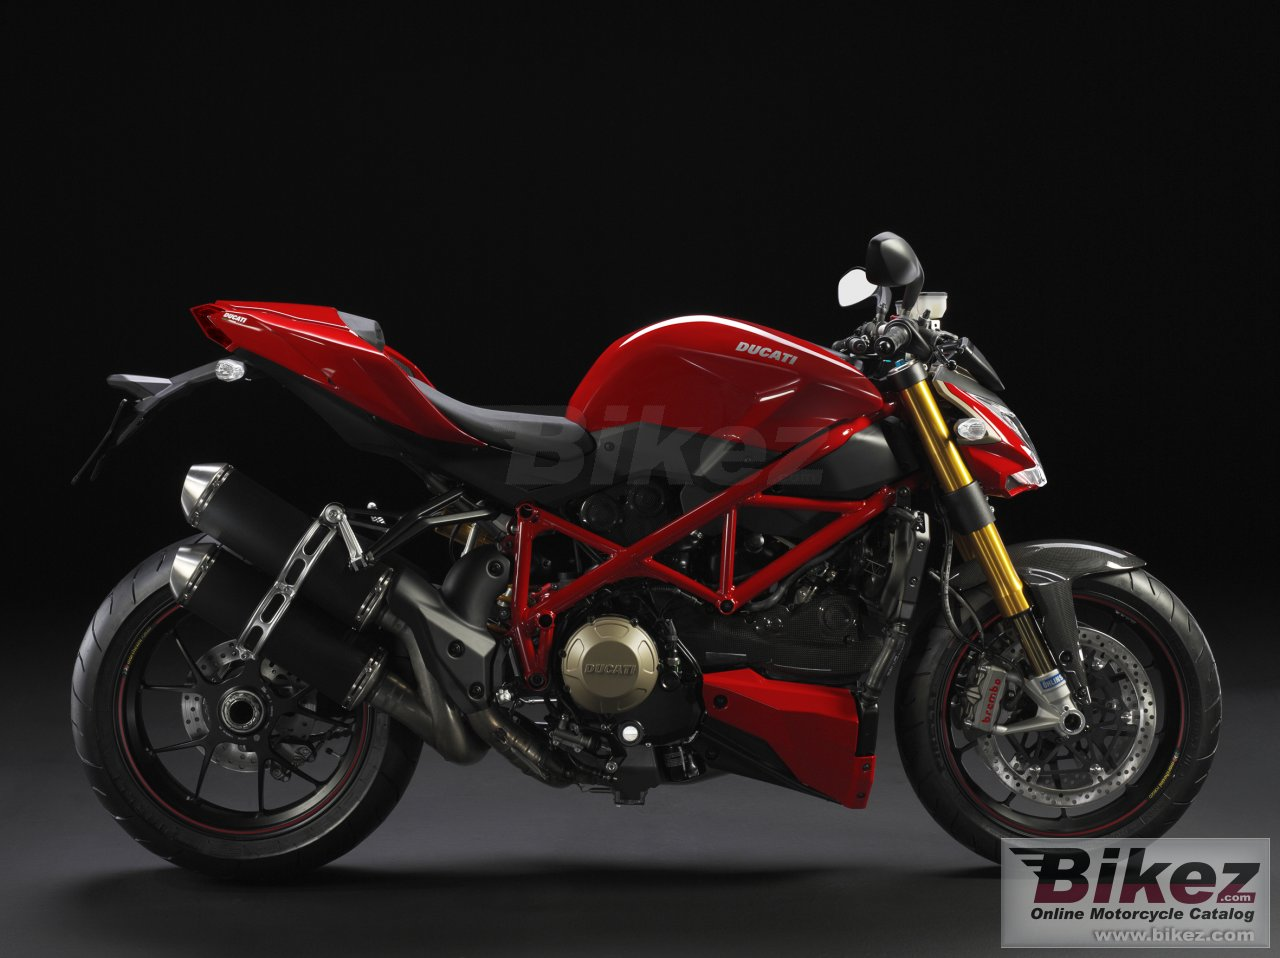 Big Ducati streetfighter s picture and wallpaper from Bikez.com